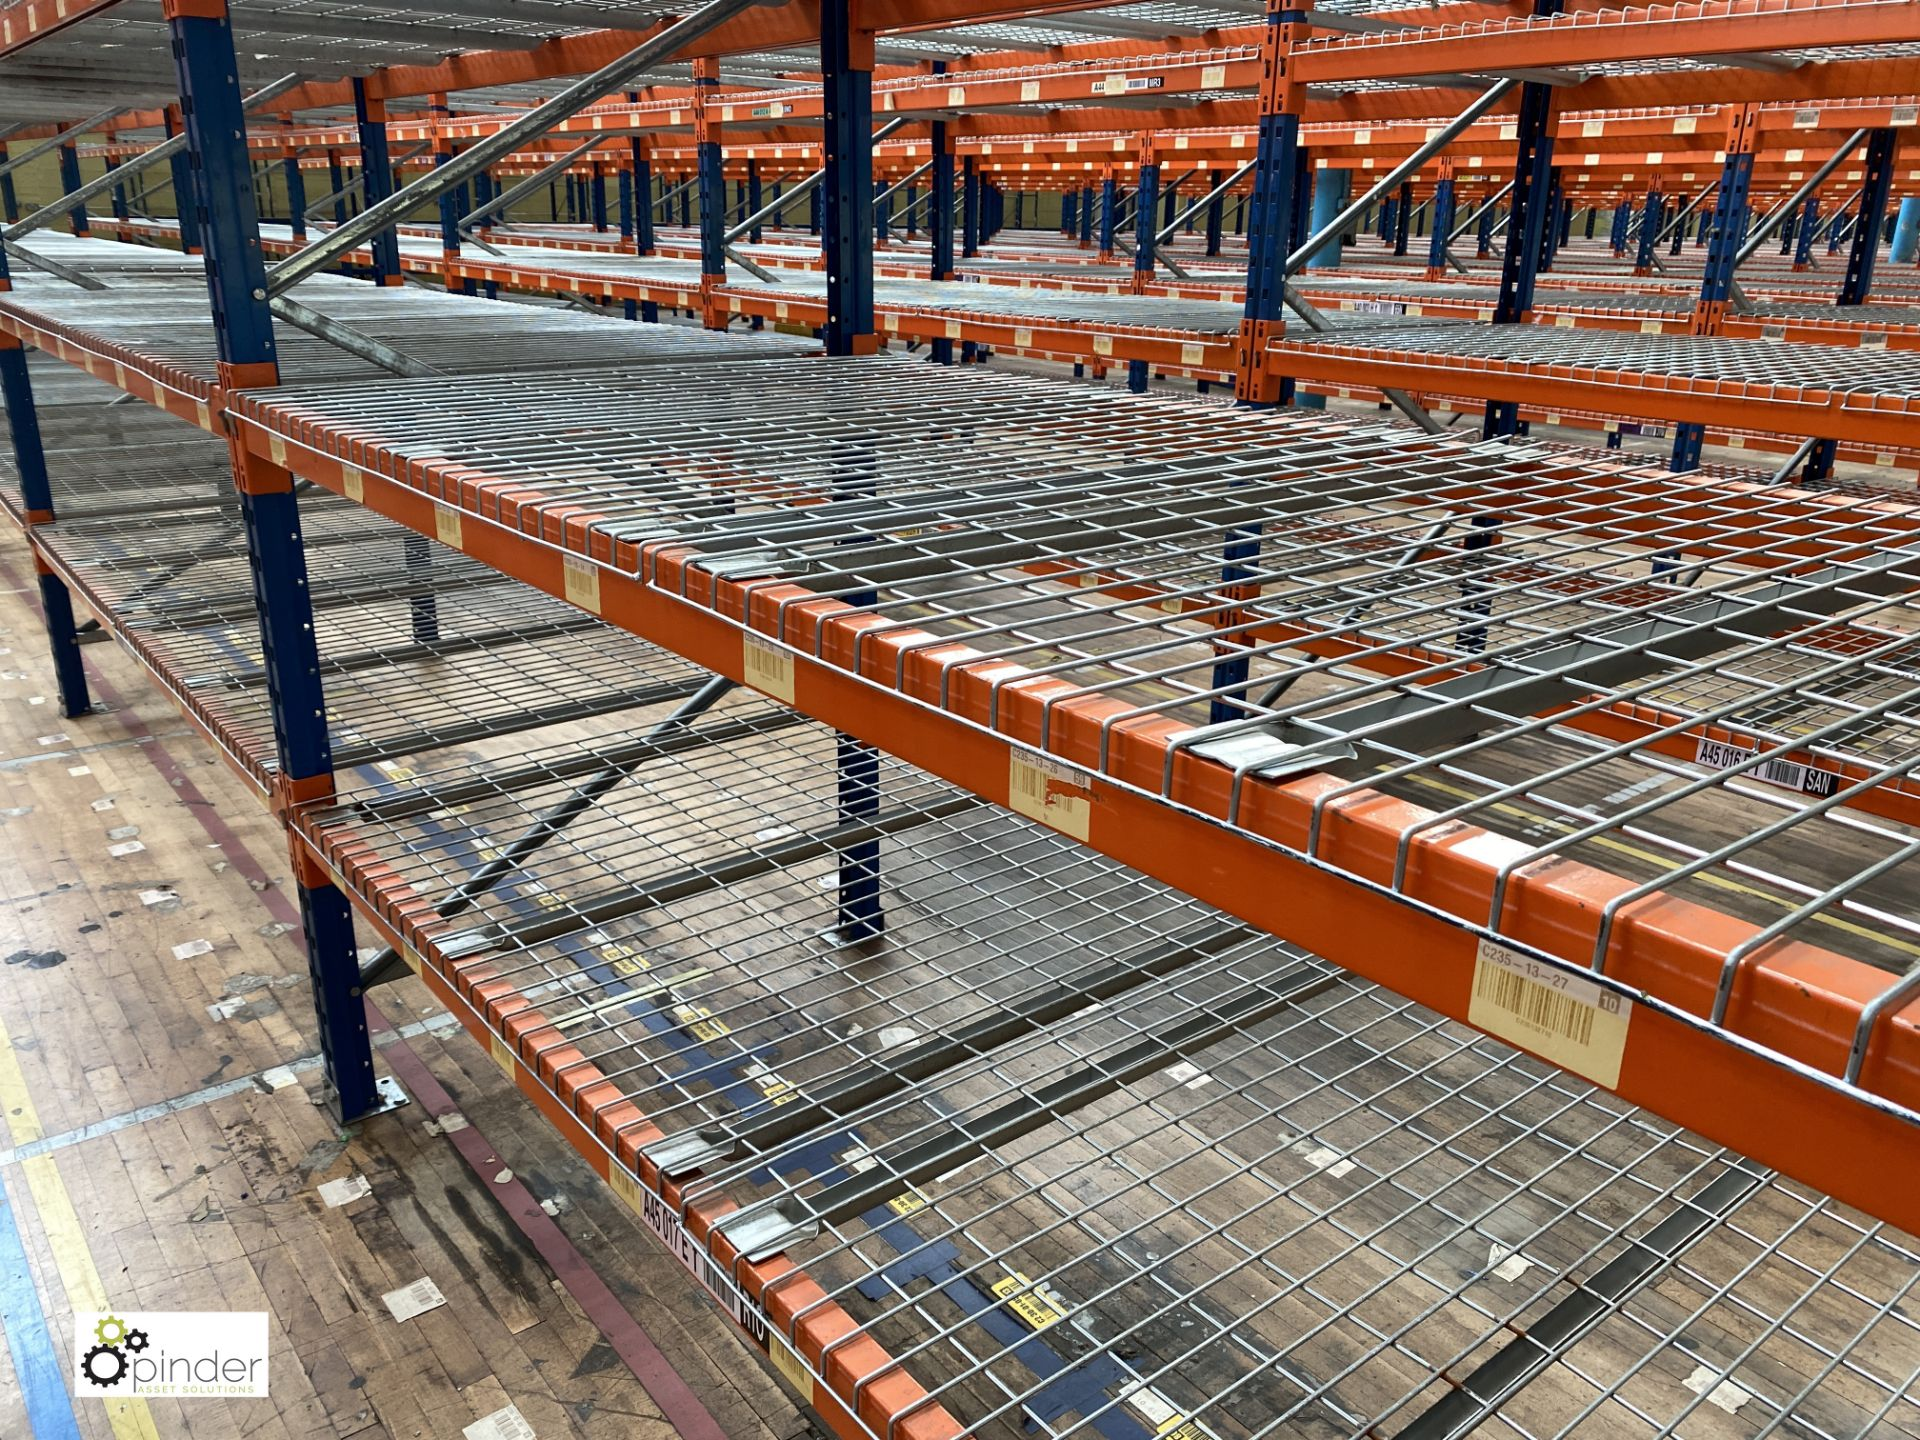 7 bays PSS 2K85 16 boltless Stock Racking, comprising 8 uprights 2400mm x 1200mm, 56 beams 2700mm, - Image 2 of 3